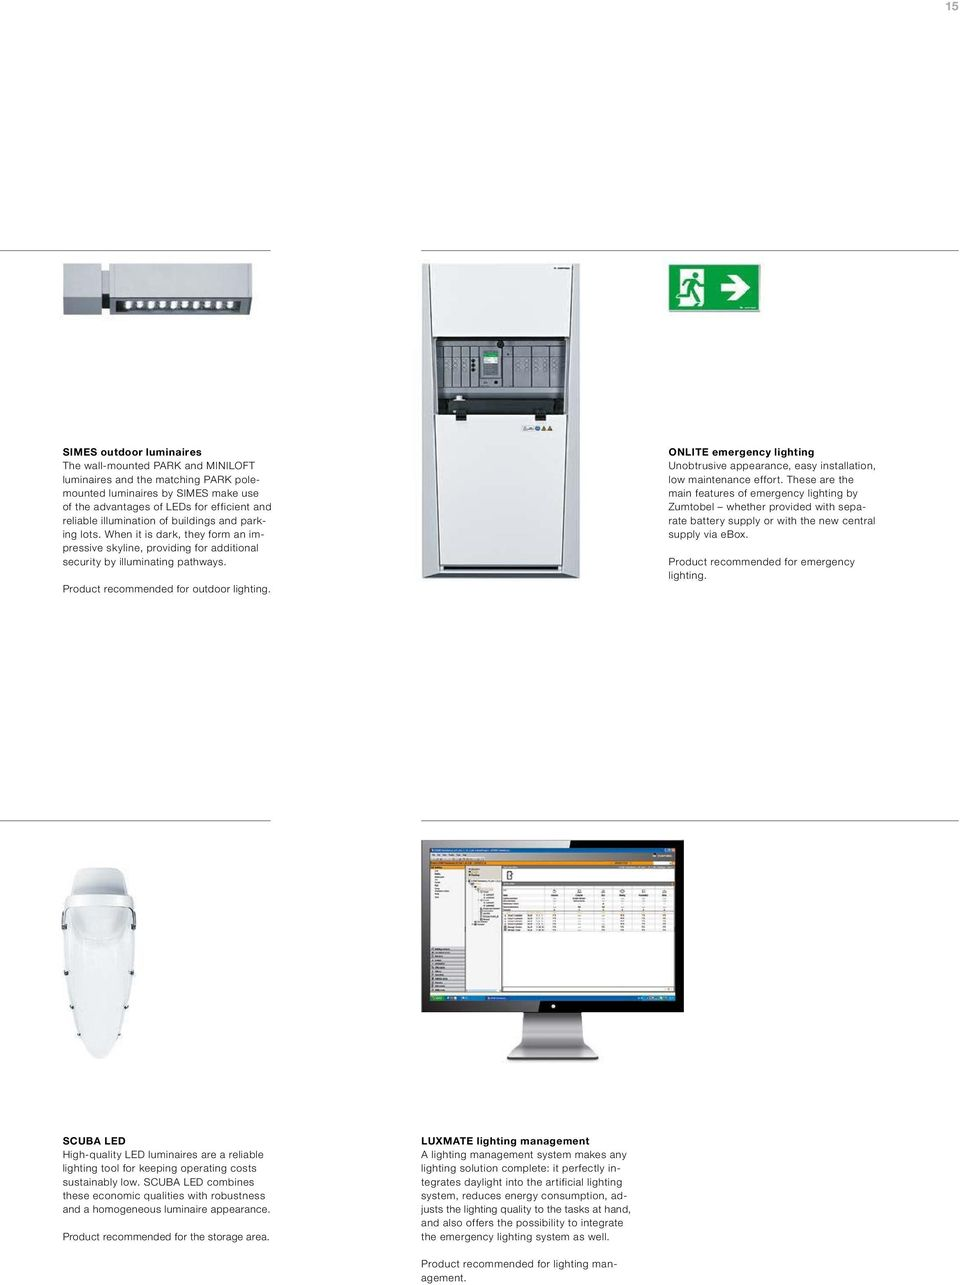 ONLITE emergency lighting Unobtrusive appearance, easy installation, low maintenance effort.